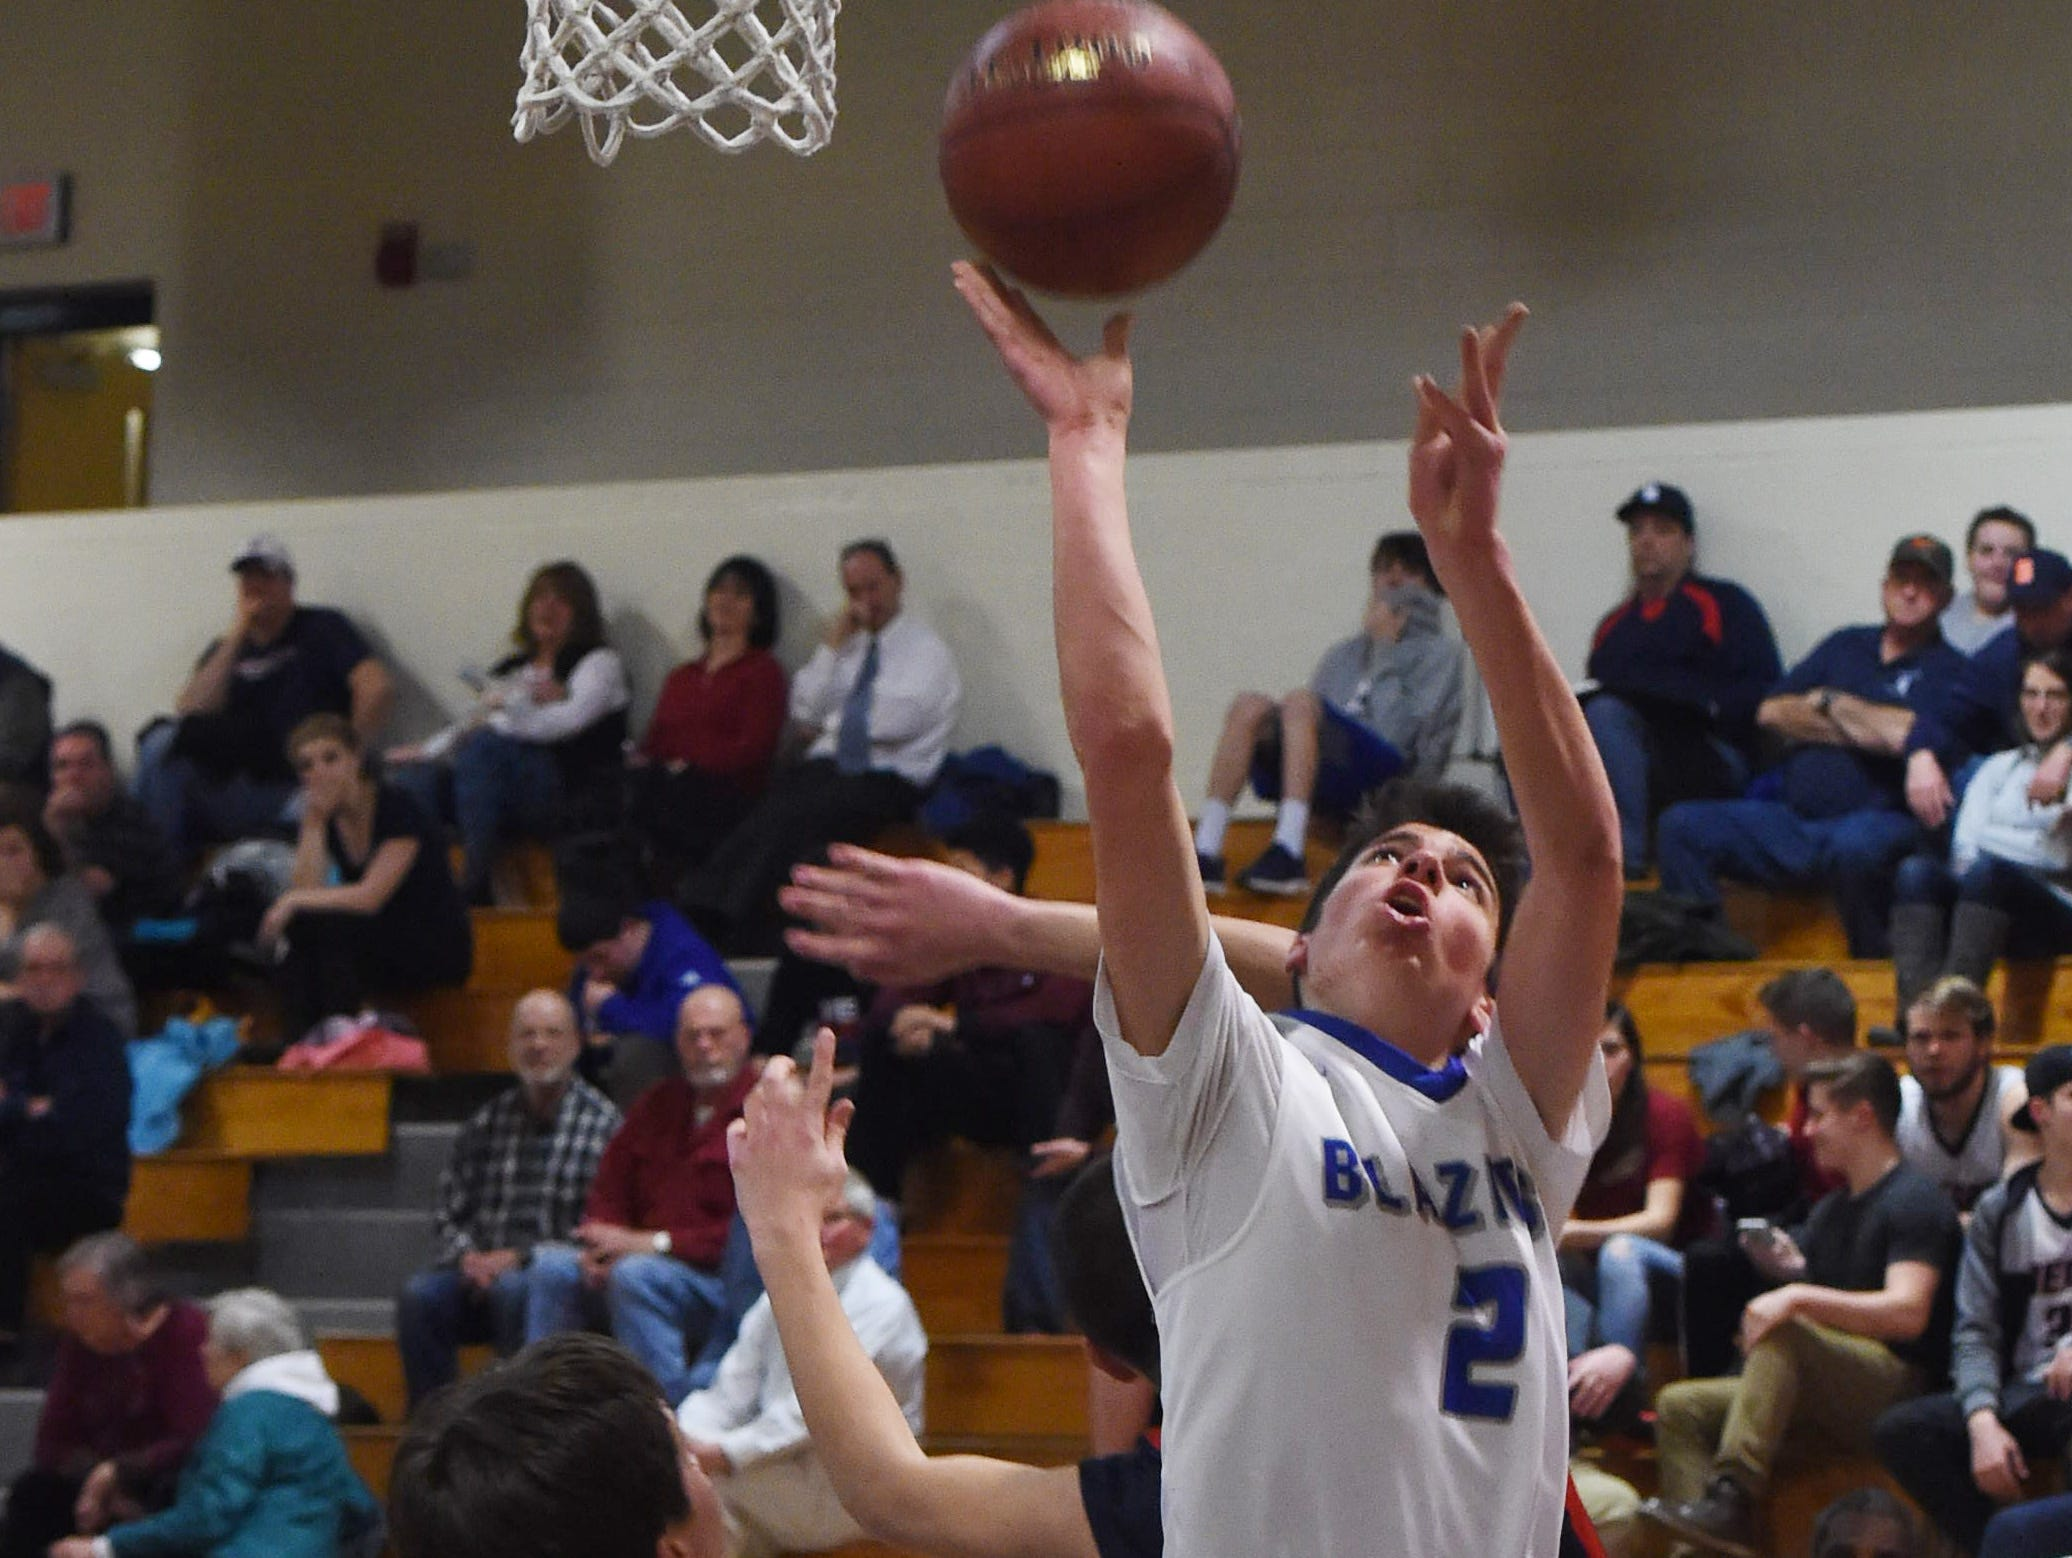 Millbrook High School's Colby Whalen takes a layup during the Section 9 Class C championship game against Tri-Valley at Mount Saint Mary College on March 3.